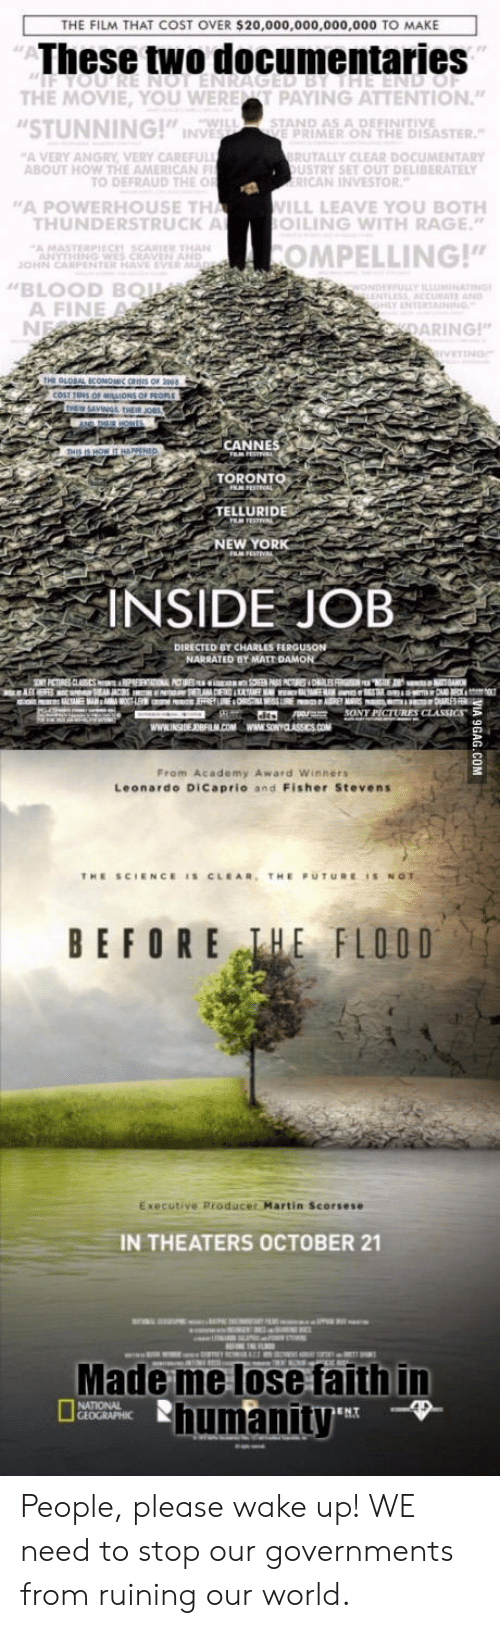 "telluride: THE FILM THAT COST OVER $20,000,000,000,000 TO MAKE  These two documentaries  THE MOVIE, YOU WERET PAYING ATTENTION""  STUNNING!"" INP  A VERY ANGRY VERY CAREFU  WIL  STAND AS A DEFINITIVE  E PRIMER ON THE DISASTER  UTALLY CLEAR DOCUMENTARY  USTRY SET OUT DELIBERATELY  ABOUT HOW THE AMERICAN  TO DEFRAUD THE O  ICAN INVESTOR  A POWERHOUSE TH  ILL LEAVE YOU BOTH  LING WITH RAGE""  HUNDERSTRUCK A  O  COMPELLING!""  BLOOD BQ  A FINE  İNTERTAINING,  ARING!  CANNES  TORONTO  TELLURIDE  NEW YORK  INSIDE JOB  DIRECTED BY CHARLES FERGUSON  8SONY PICTURES  From Academy Award Winners  Leonardo DiCaprio and Fisher Stevens  BEFORE EFLOOD  Executive Producer Martin Scorsese  IN THEATERS OCTOBER 21  Made me lose faith in  humanity People, please wake up! WE need to stop our governments from ruining our world."